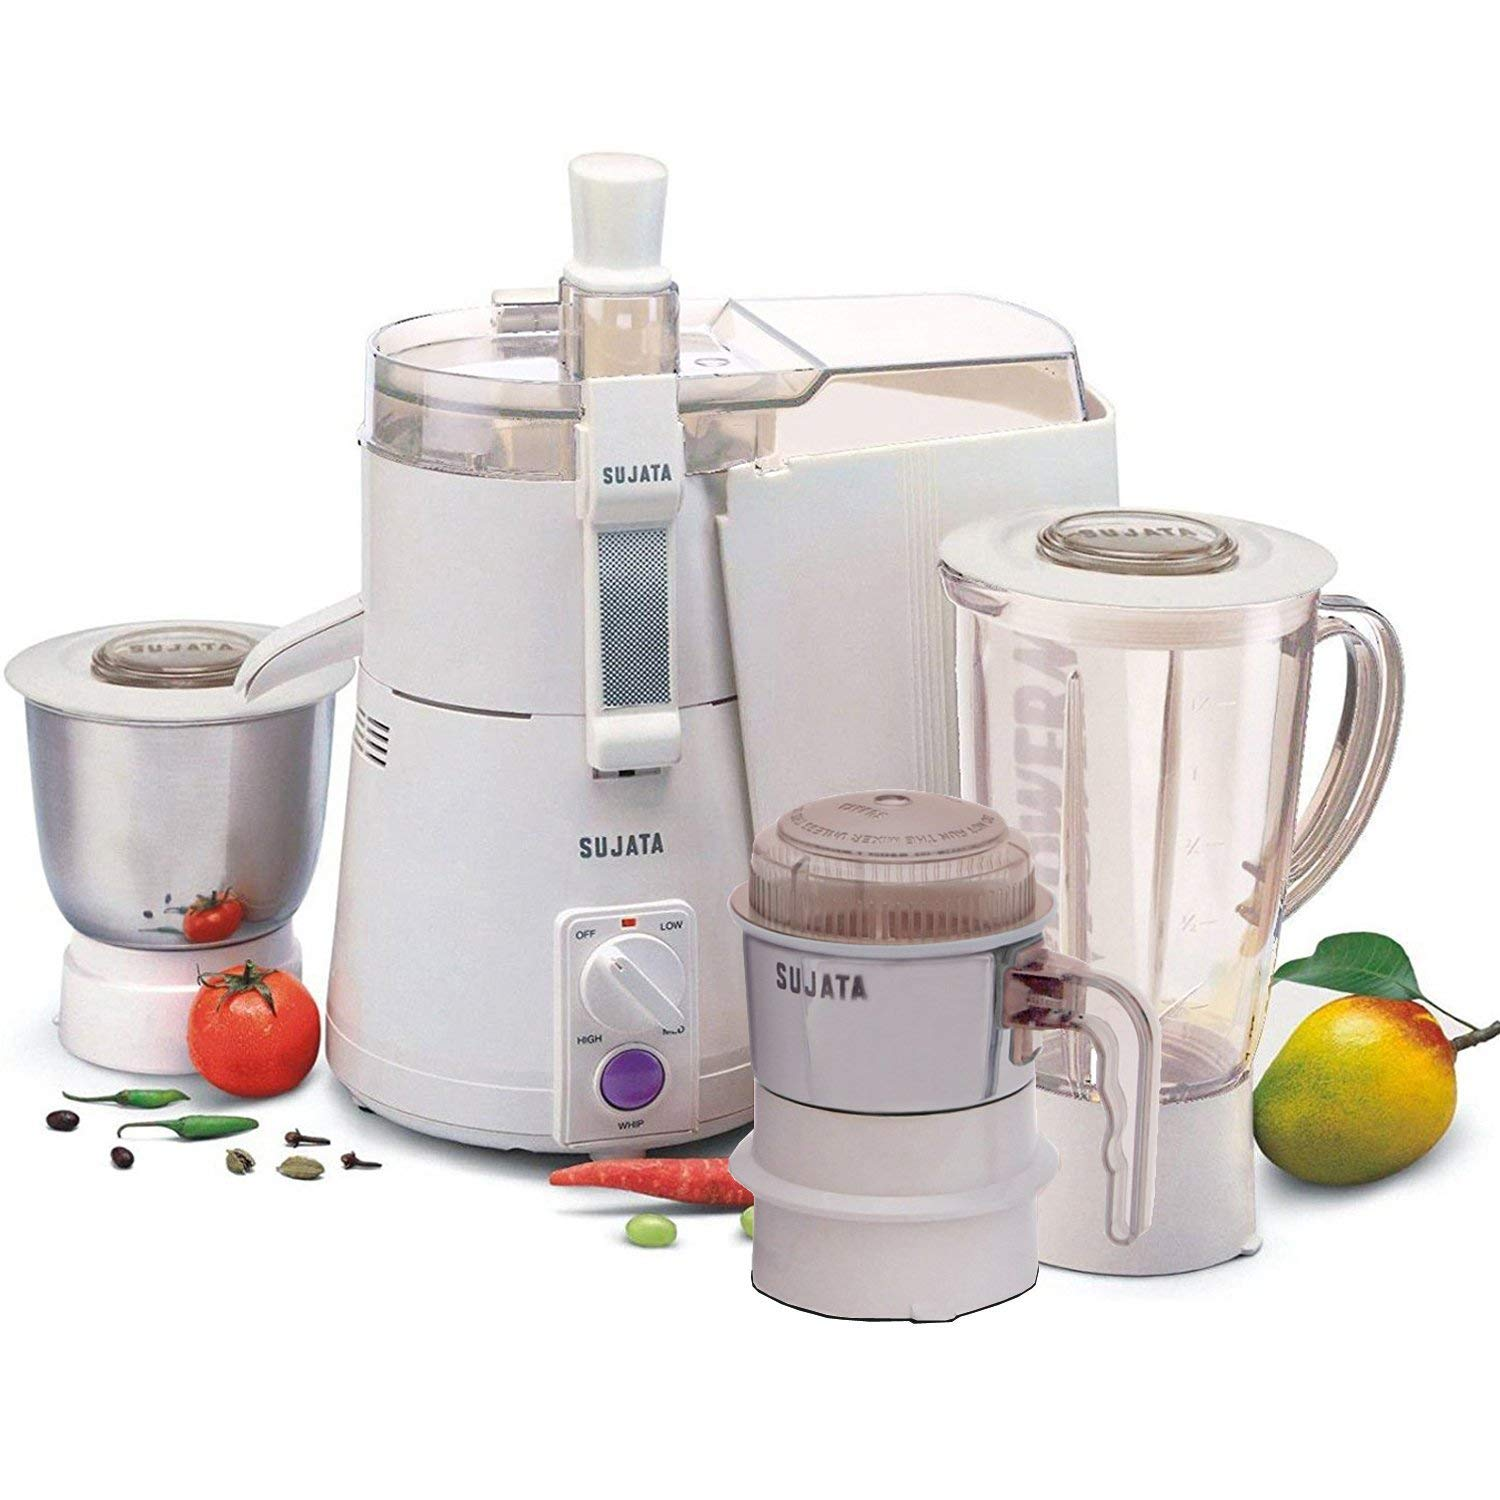 Sujata Powermatic Plus + CH 900-Watt Juicer Mixer